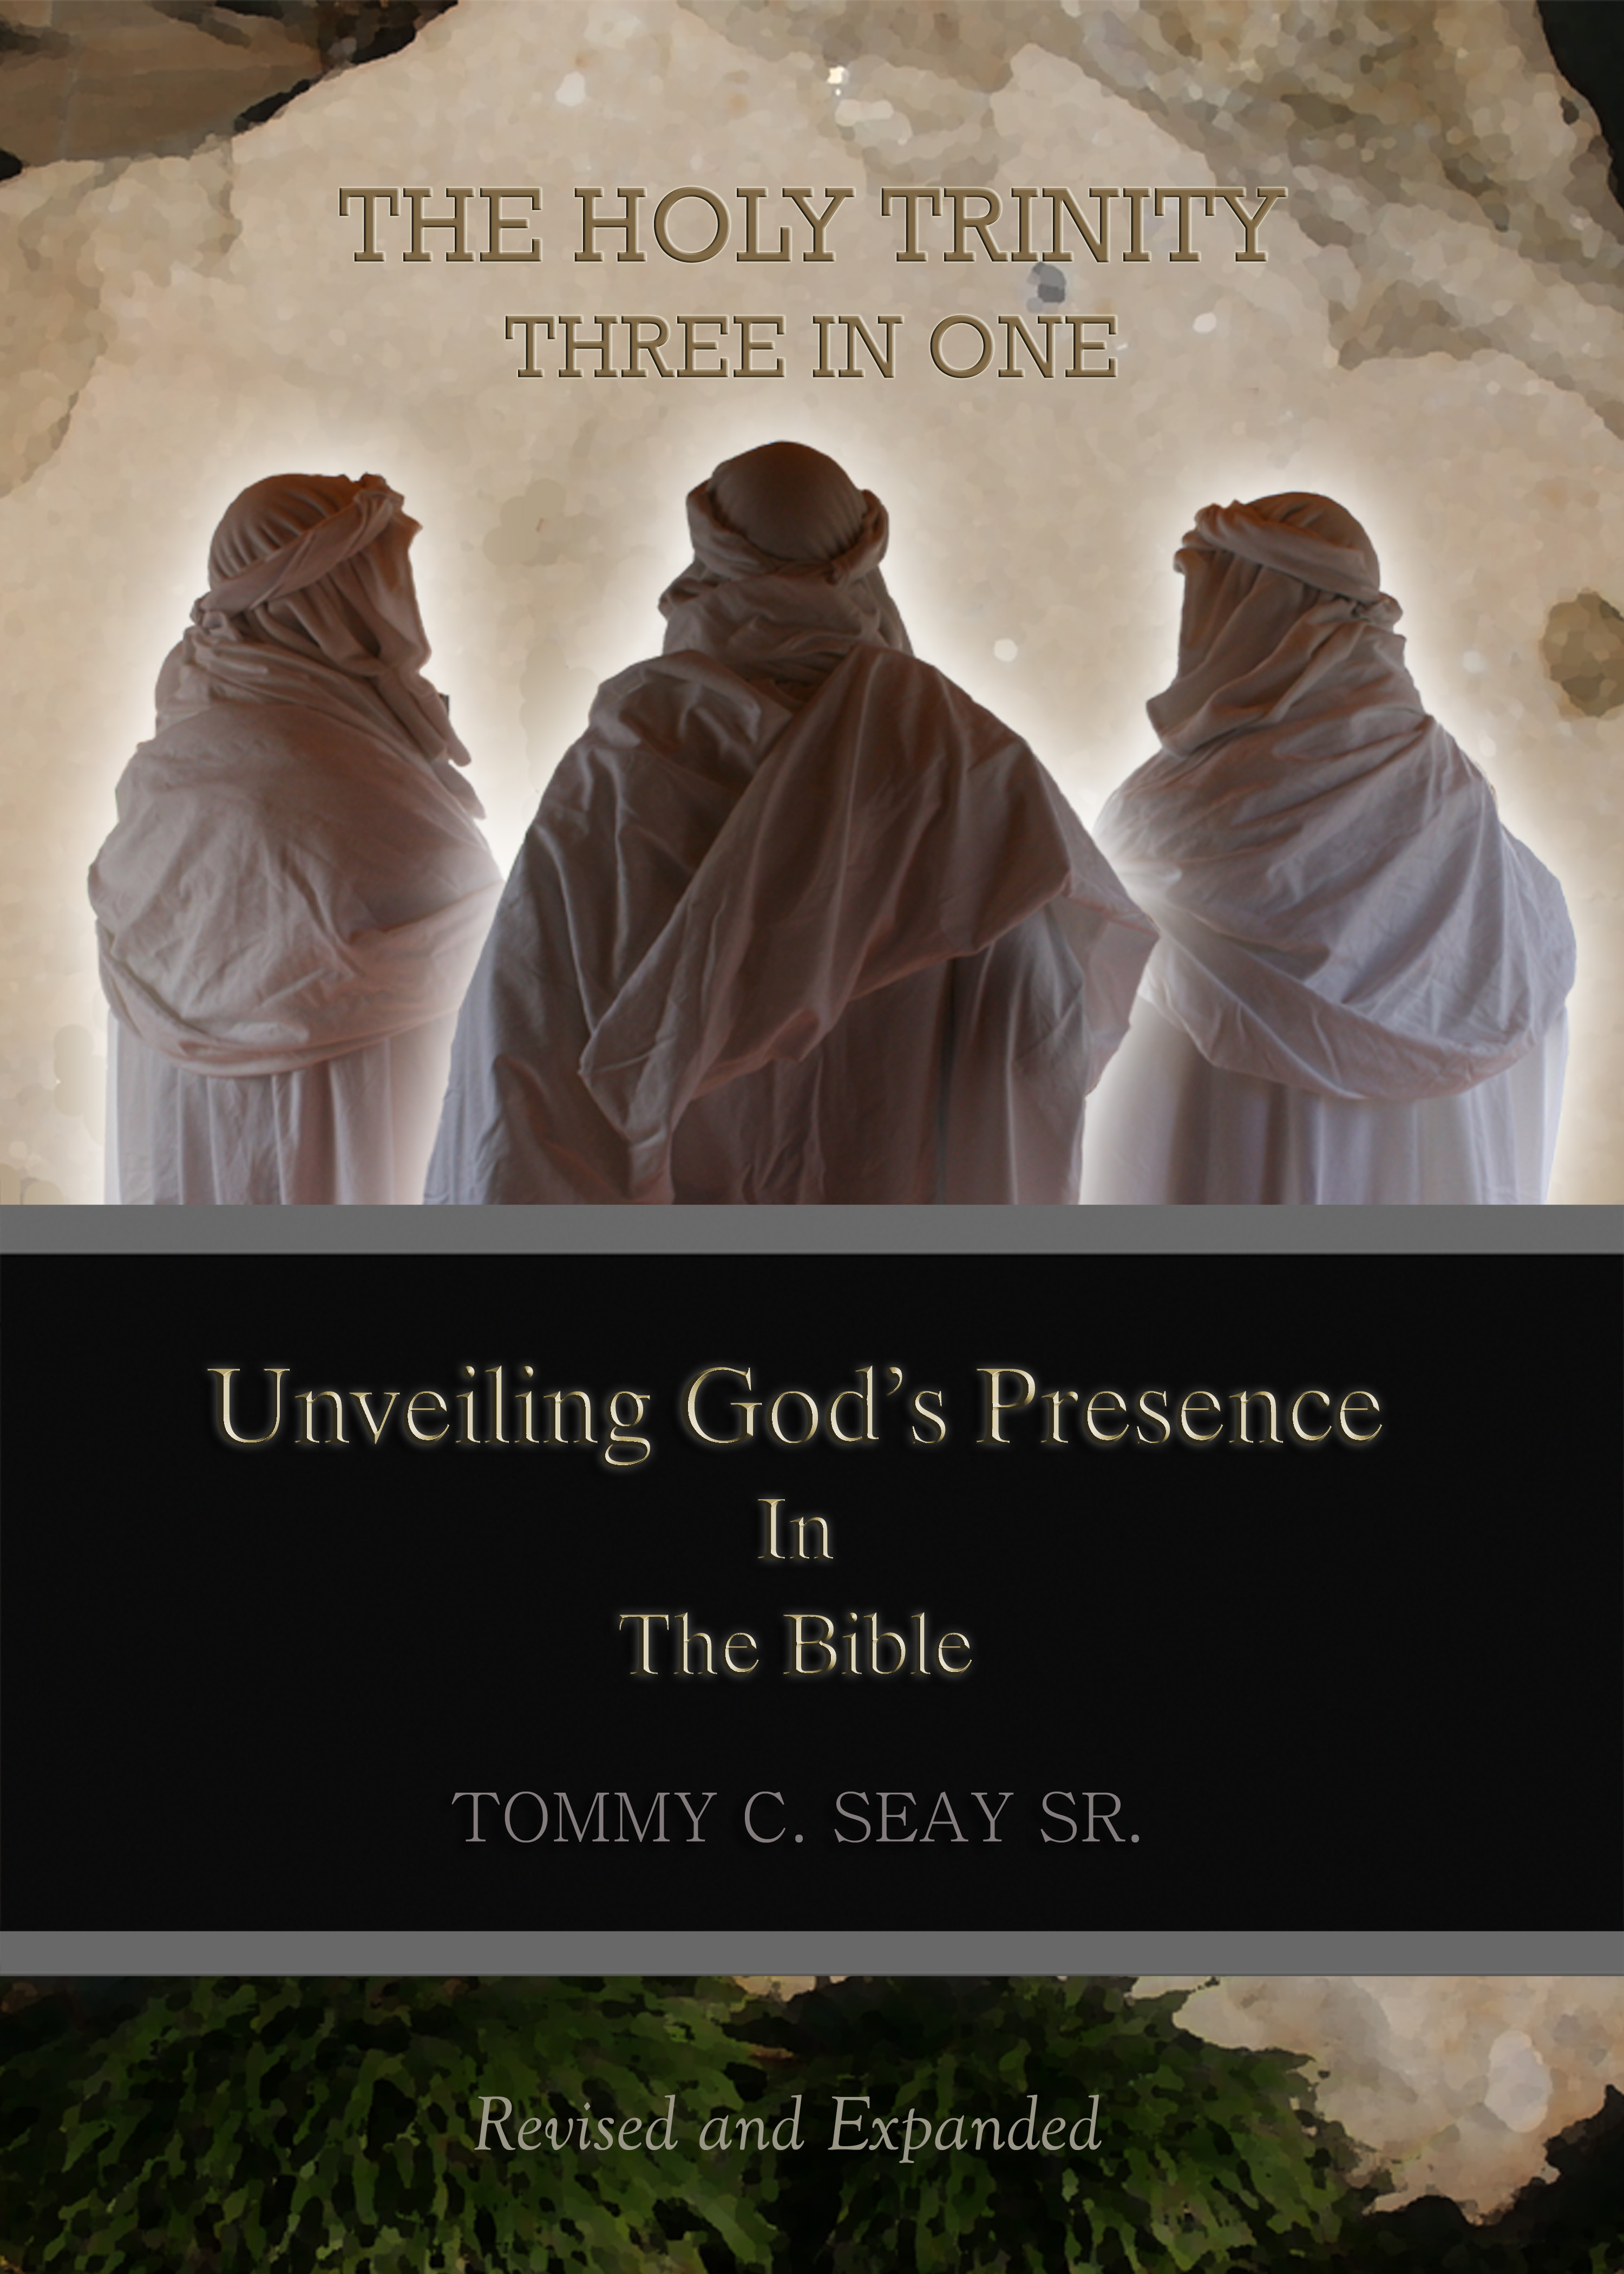 The Holy Trinity - Three In One: Unveiling God's Presence In The Bible